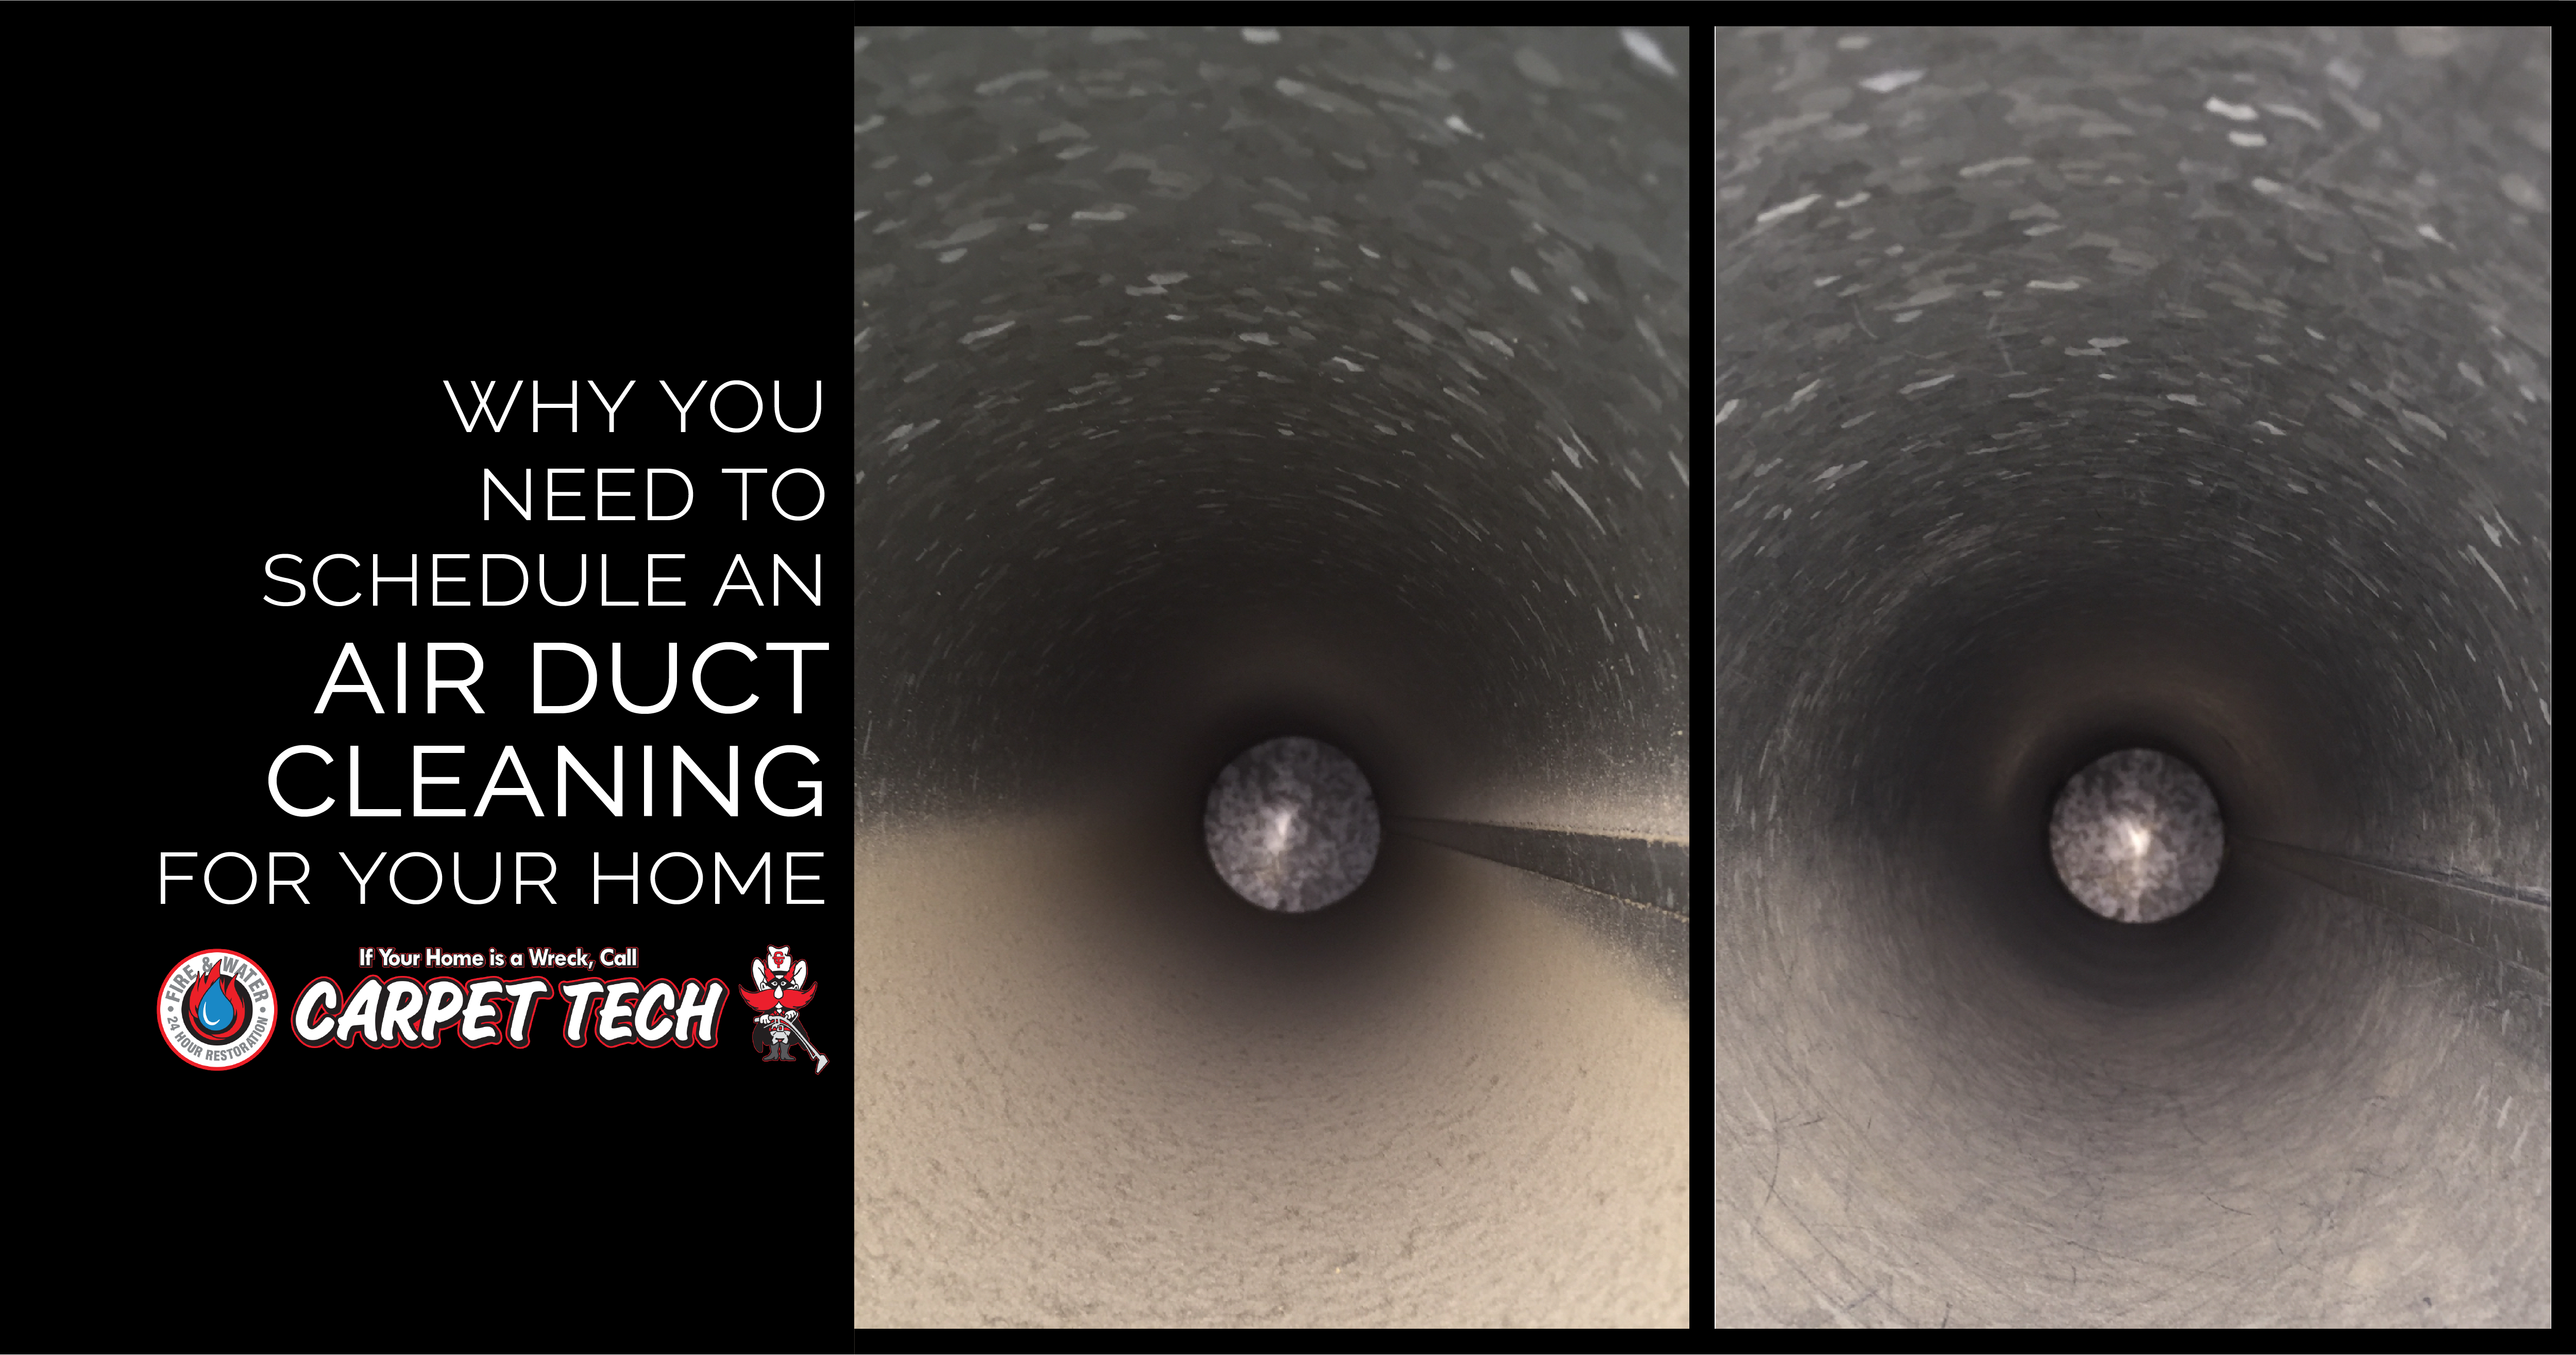 Why You Need to Schedule An Airduct Cleaning For Your Home